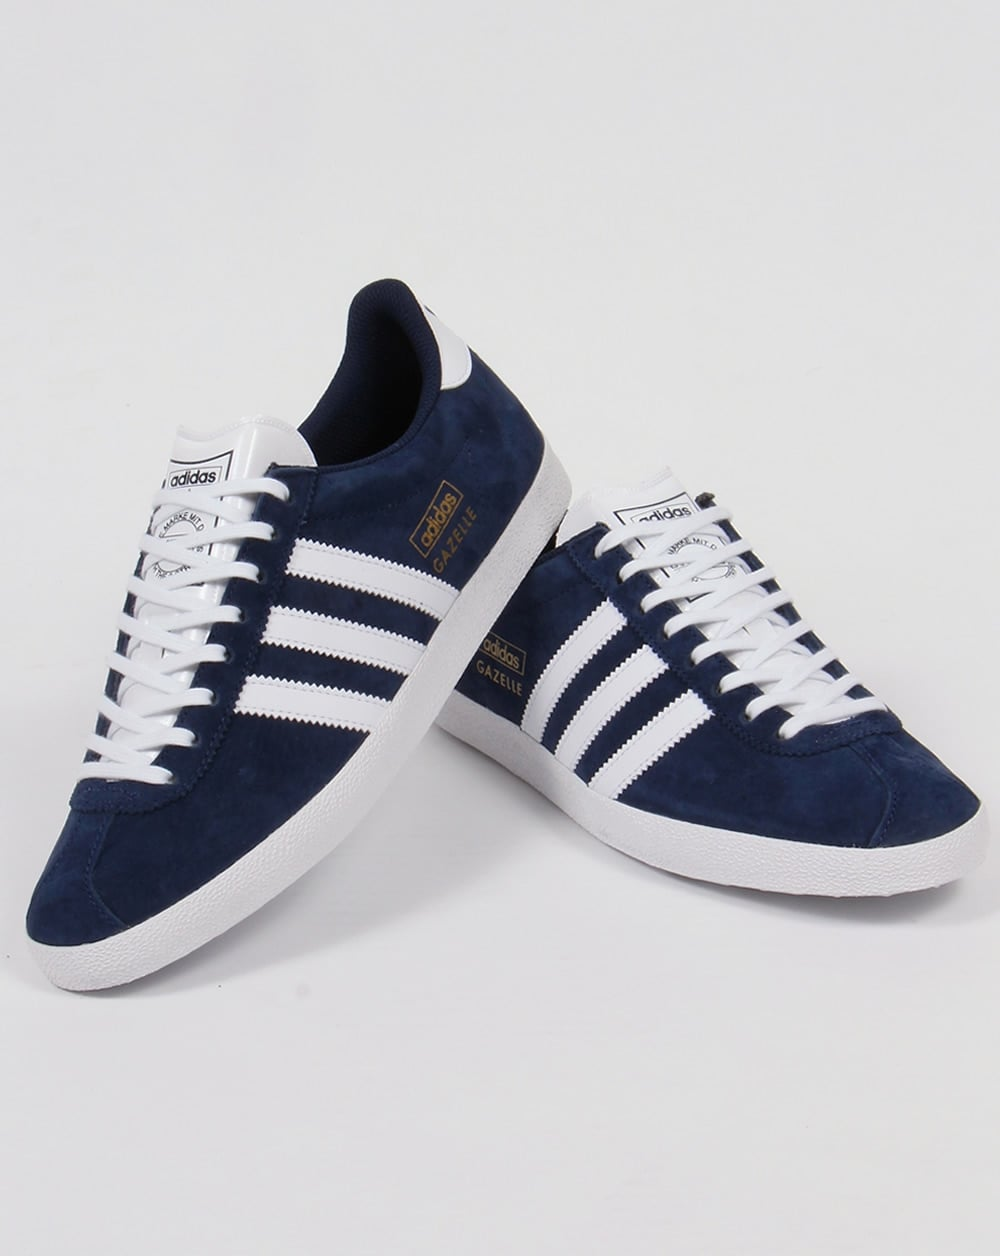 Adidas Gazelle OG Trainers Navy/White